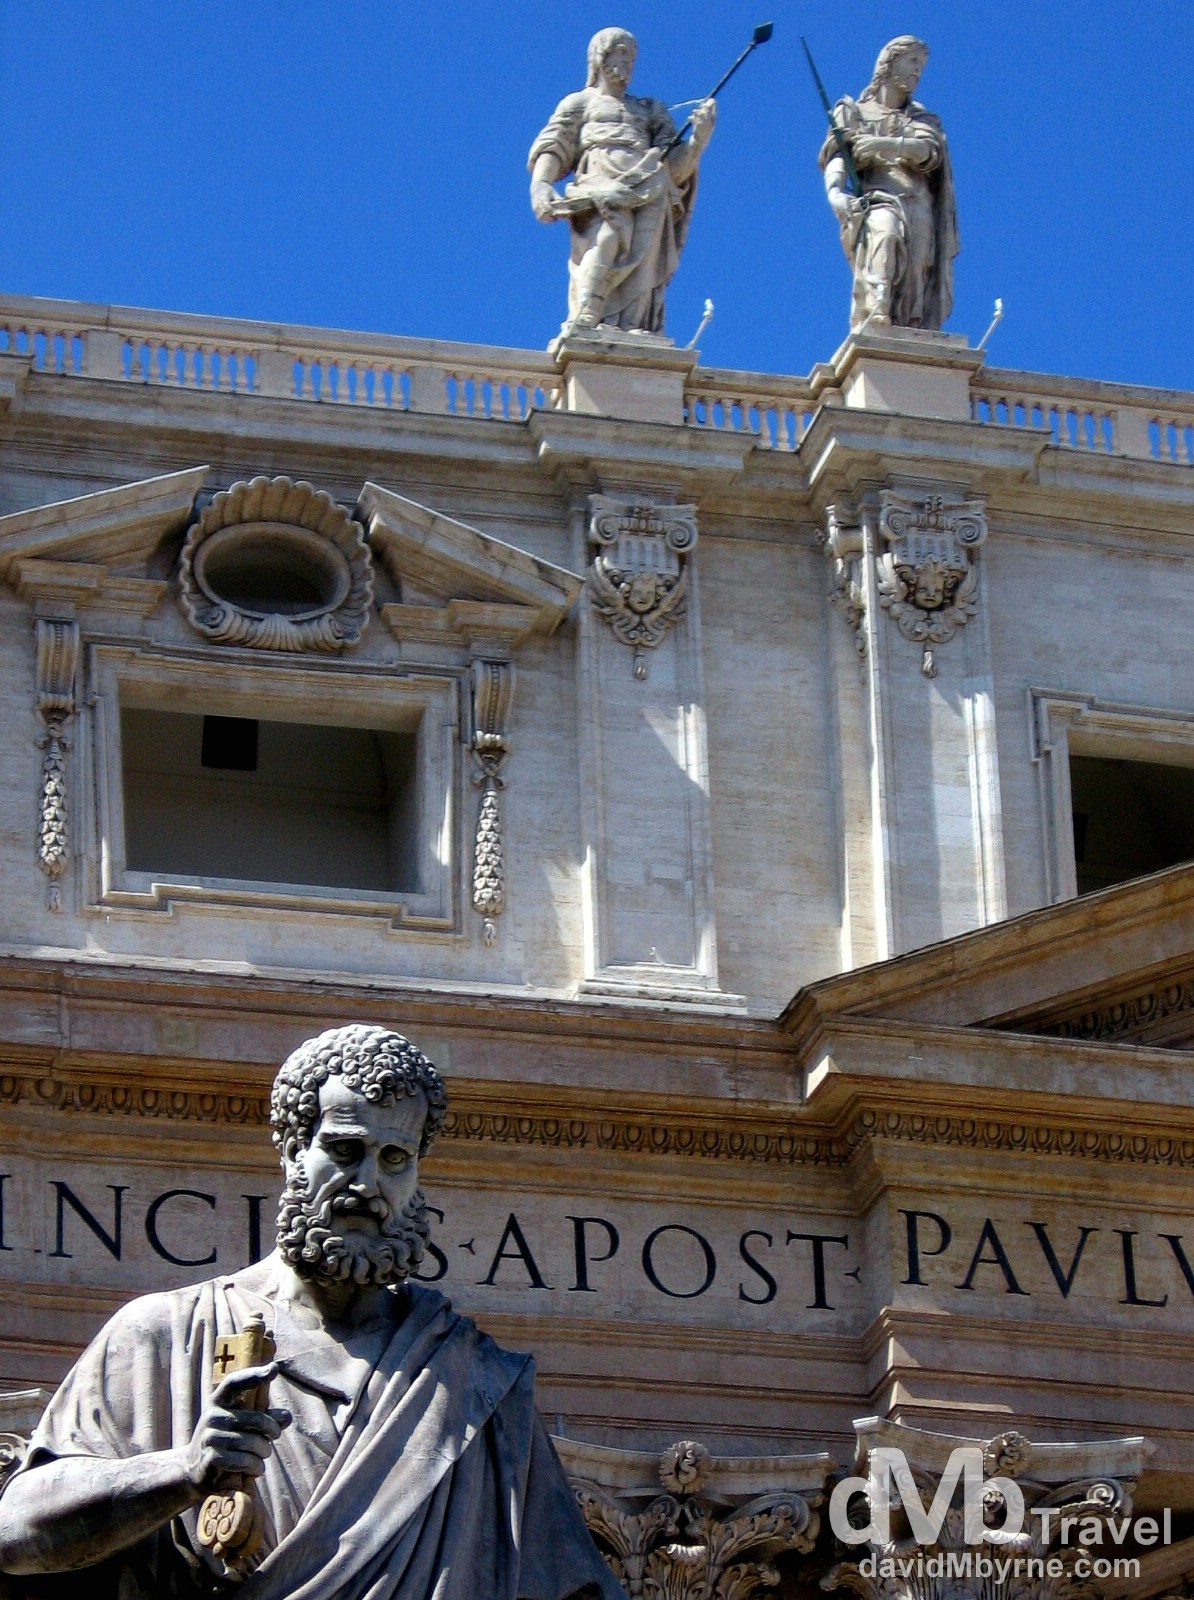 Statues adorning the facade of St. Peter's Basilica, Vatican City. September 1st, 2007.